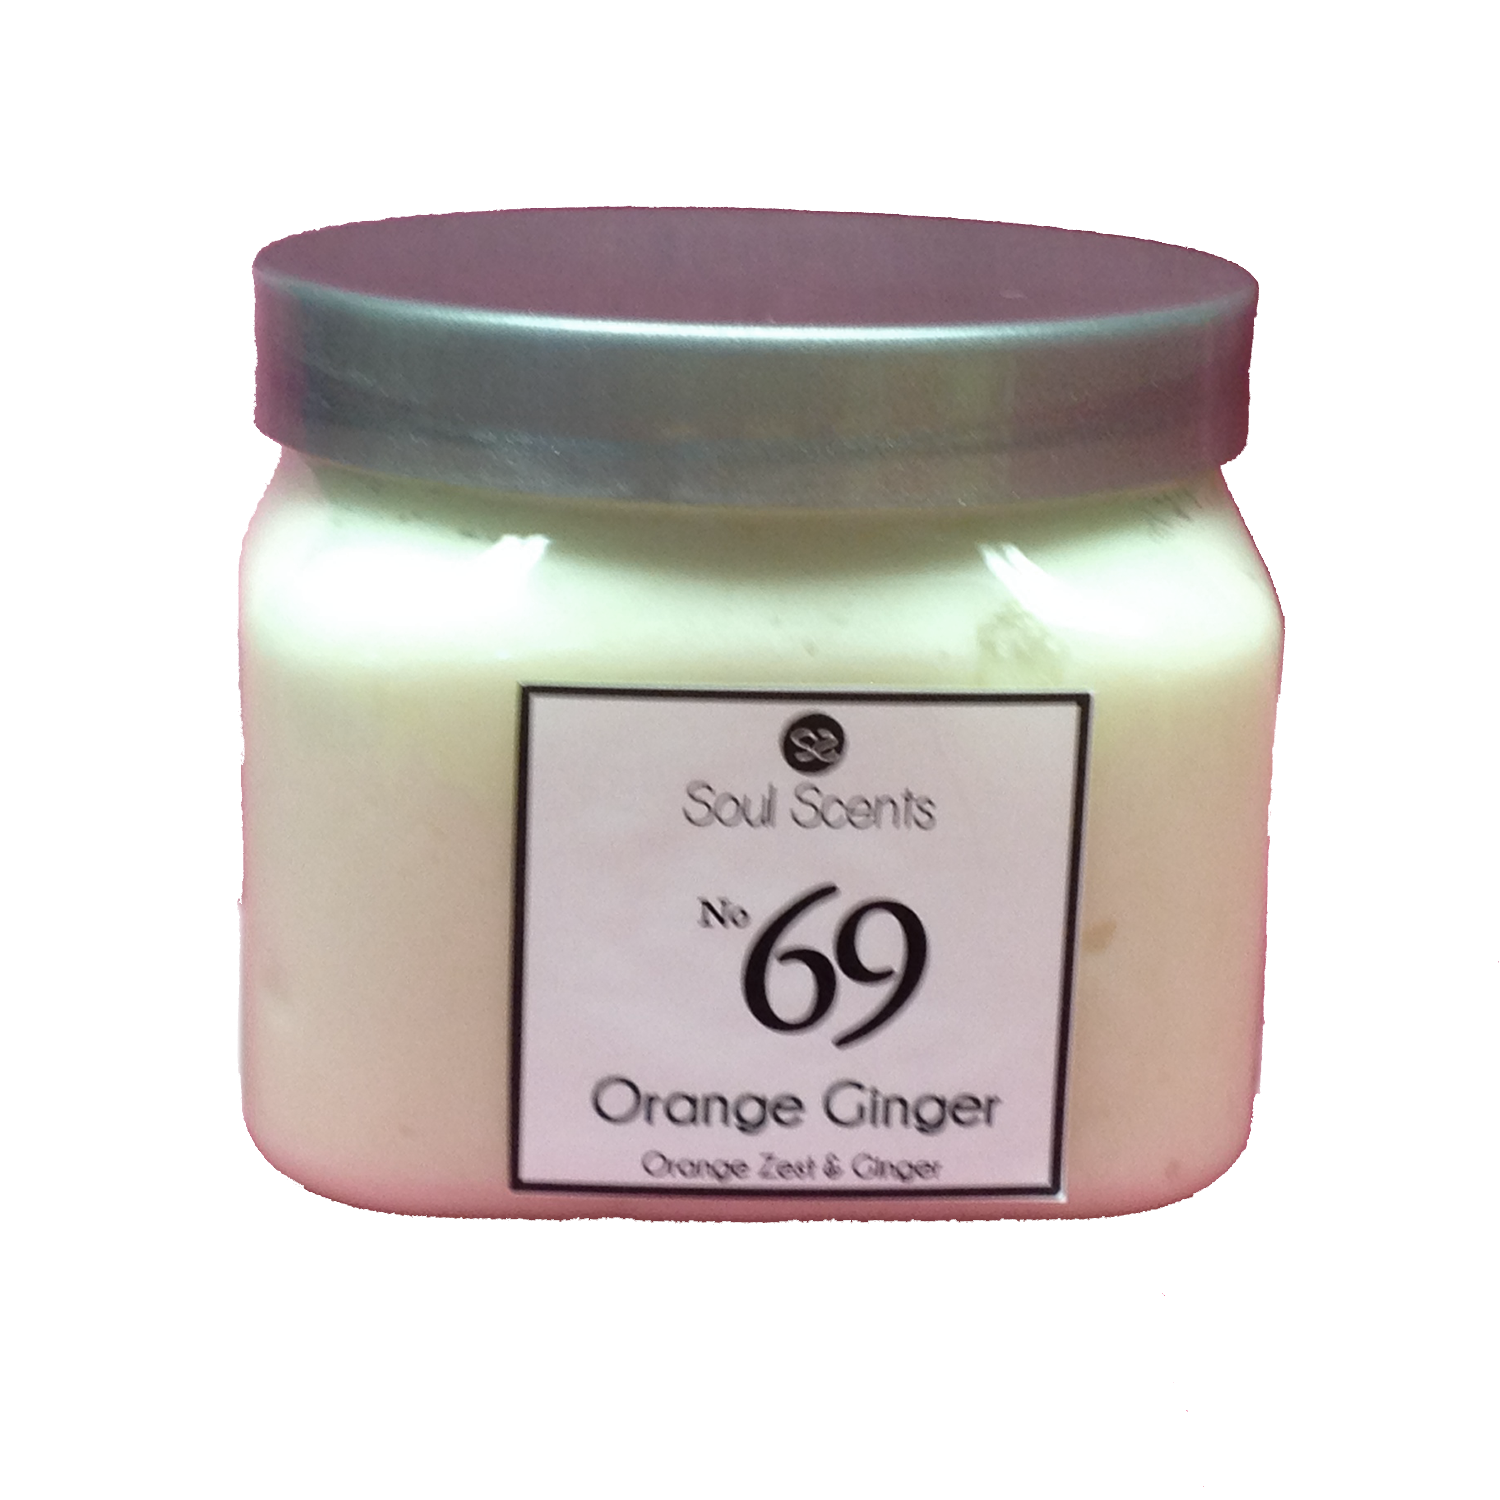 Orange Ginger #69